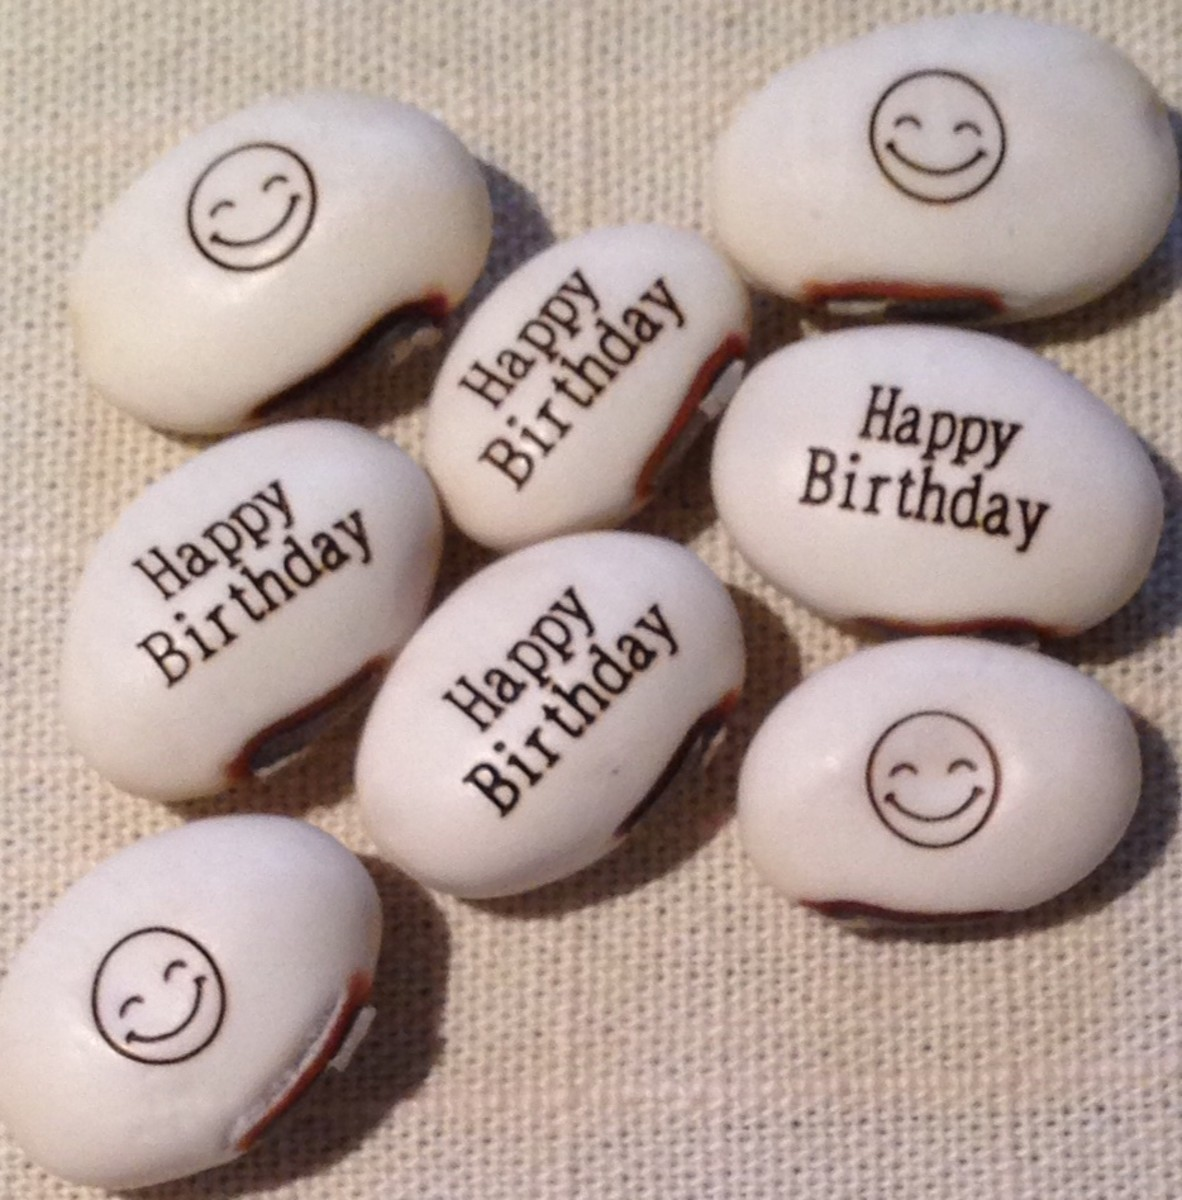 Happy Birthday Magic Message Beans can  later be sprouted in your garden!